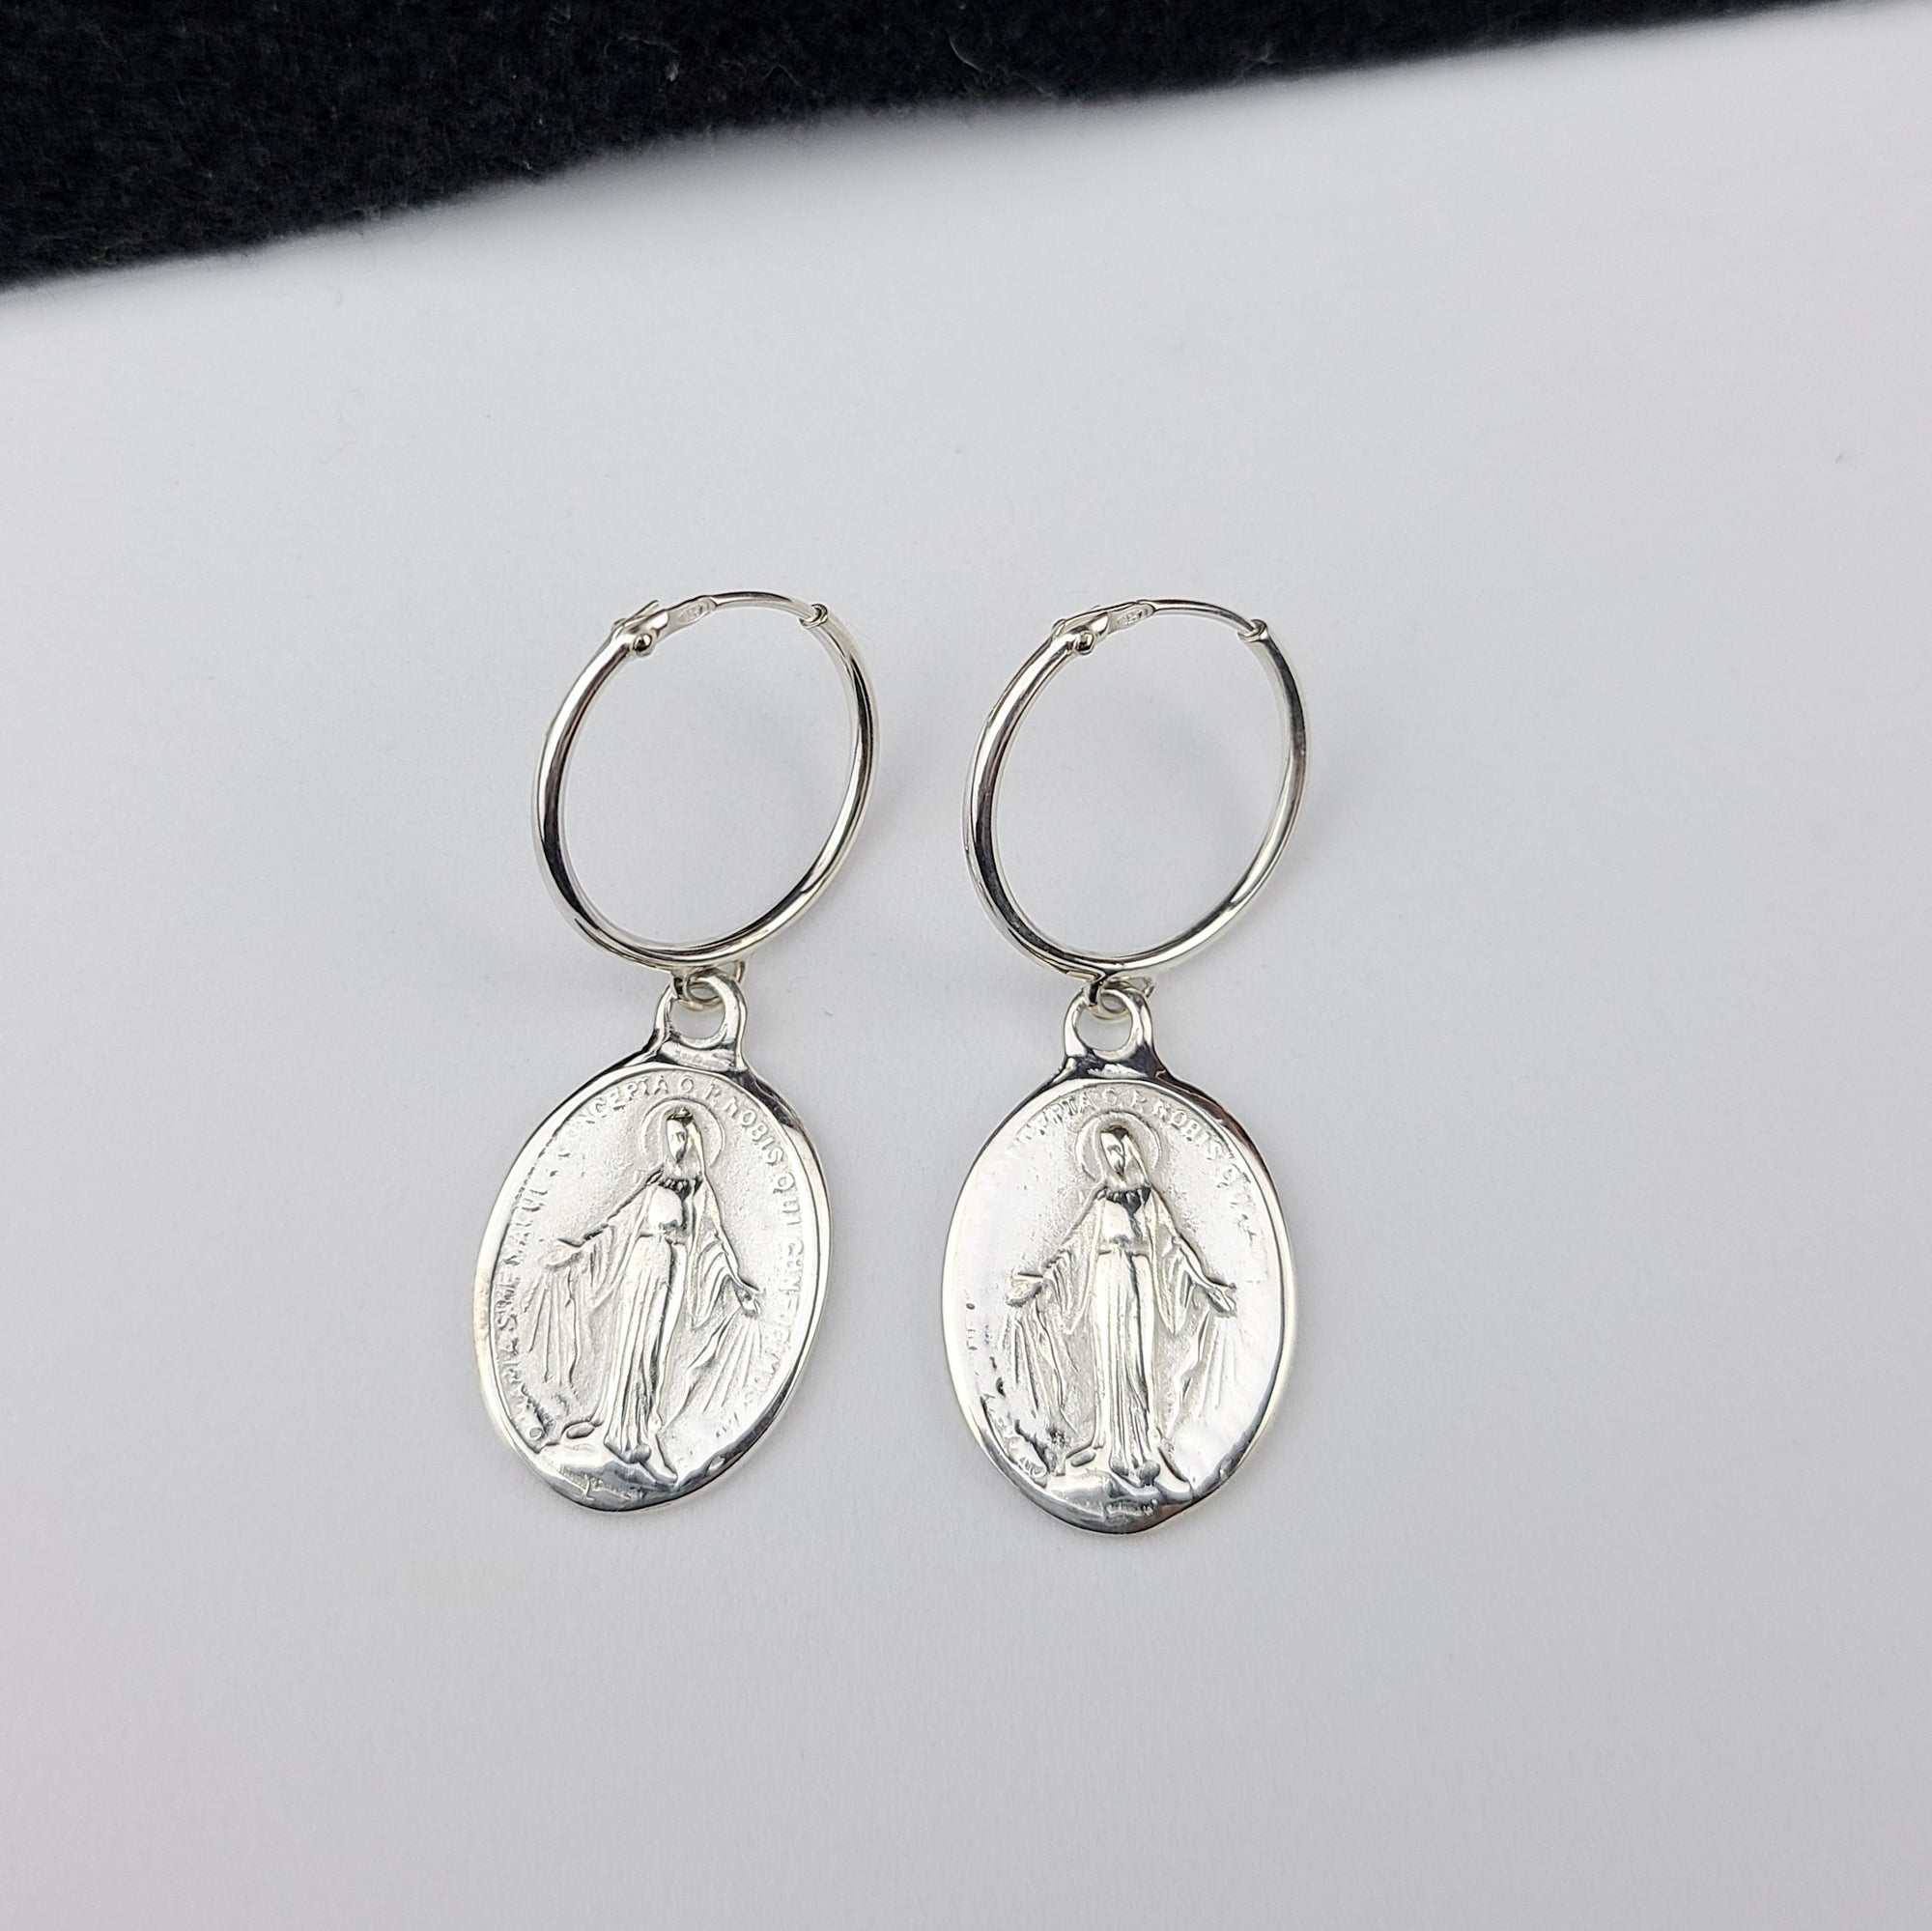 Oval Virgin Mary Medallion Hoop Earrings